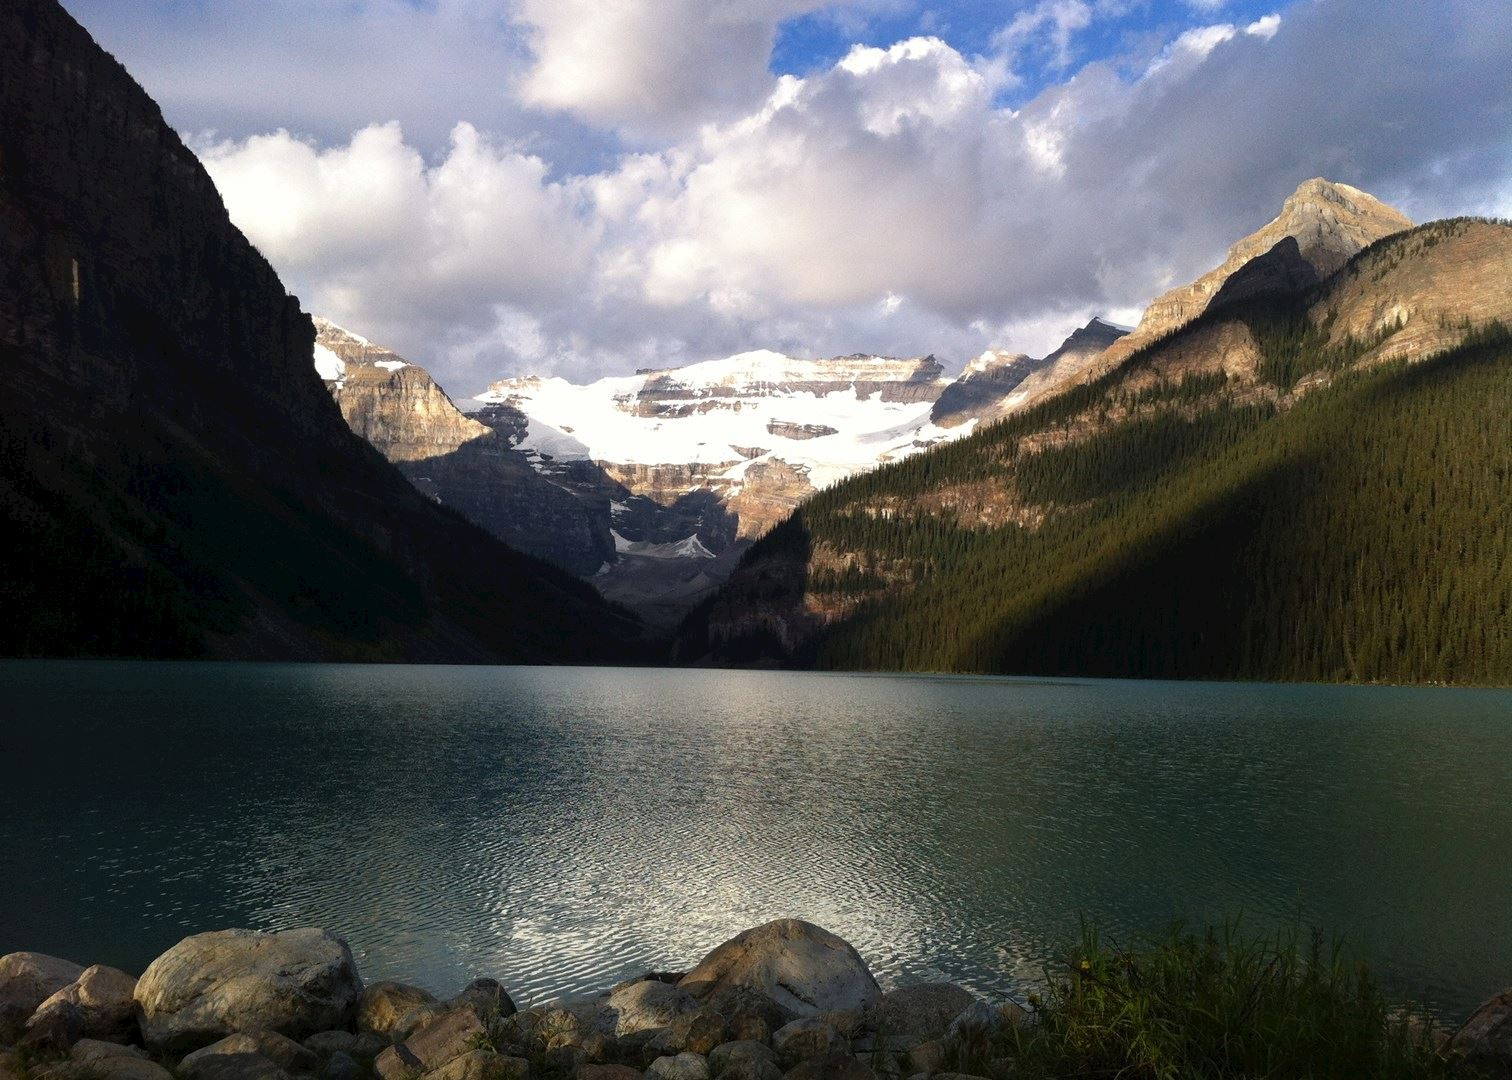 visit lake louise on a trip to canada